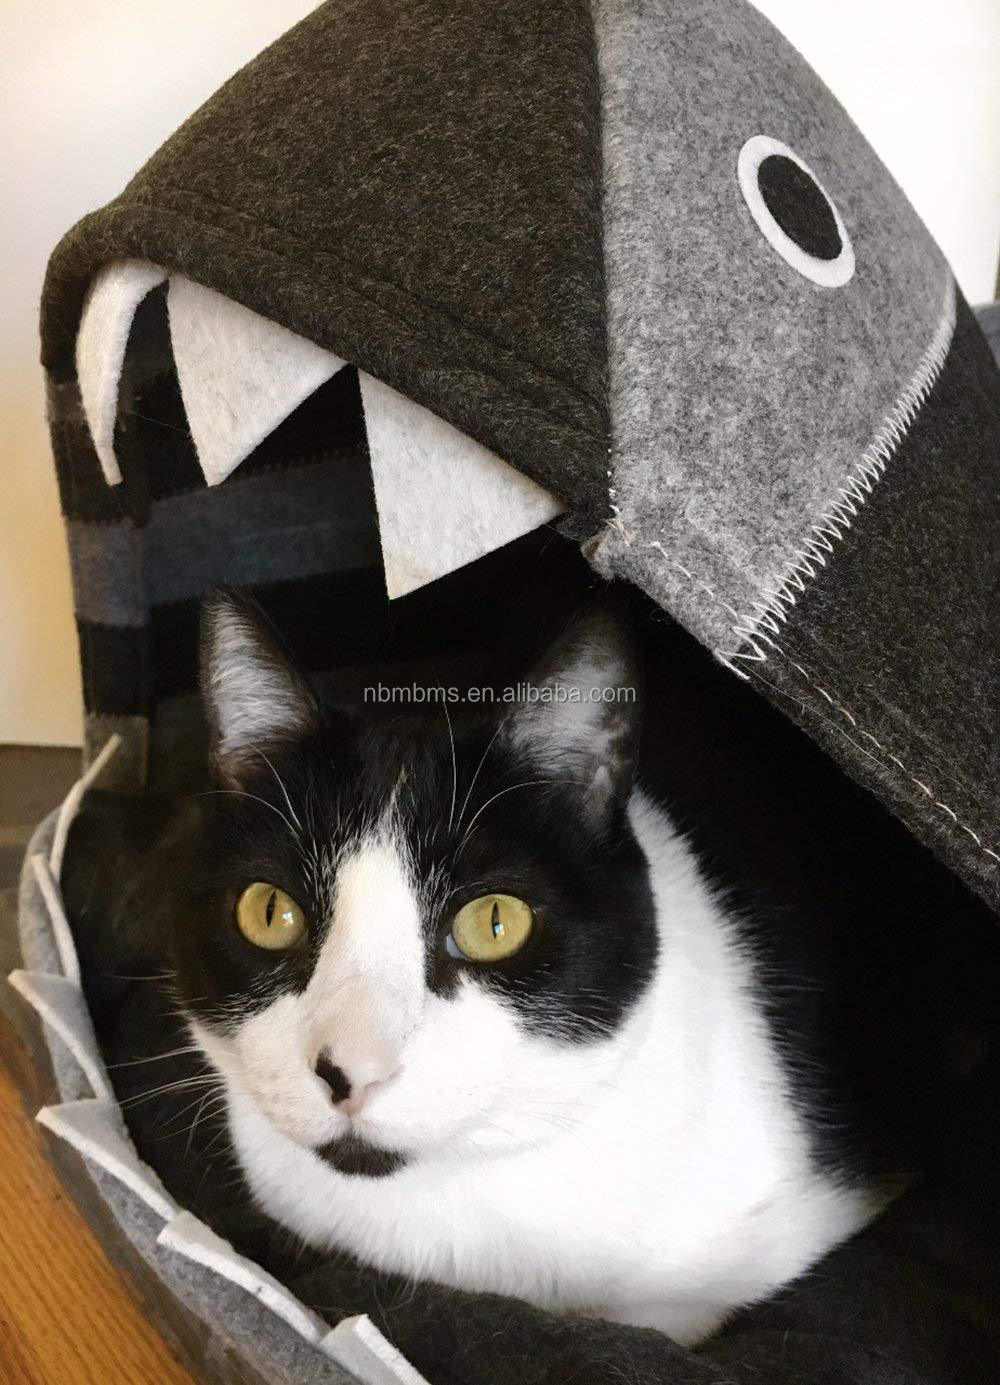 QJMAX Shark Cat Bed Cozy Comfy Cave For Pets